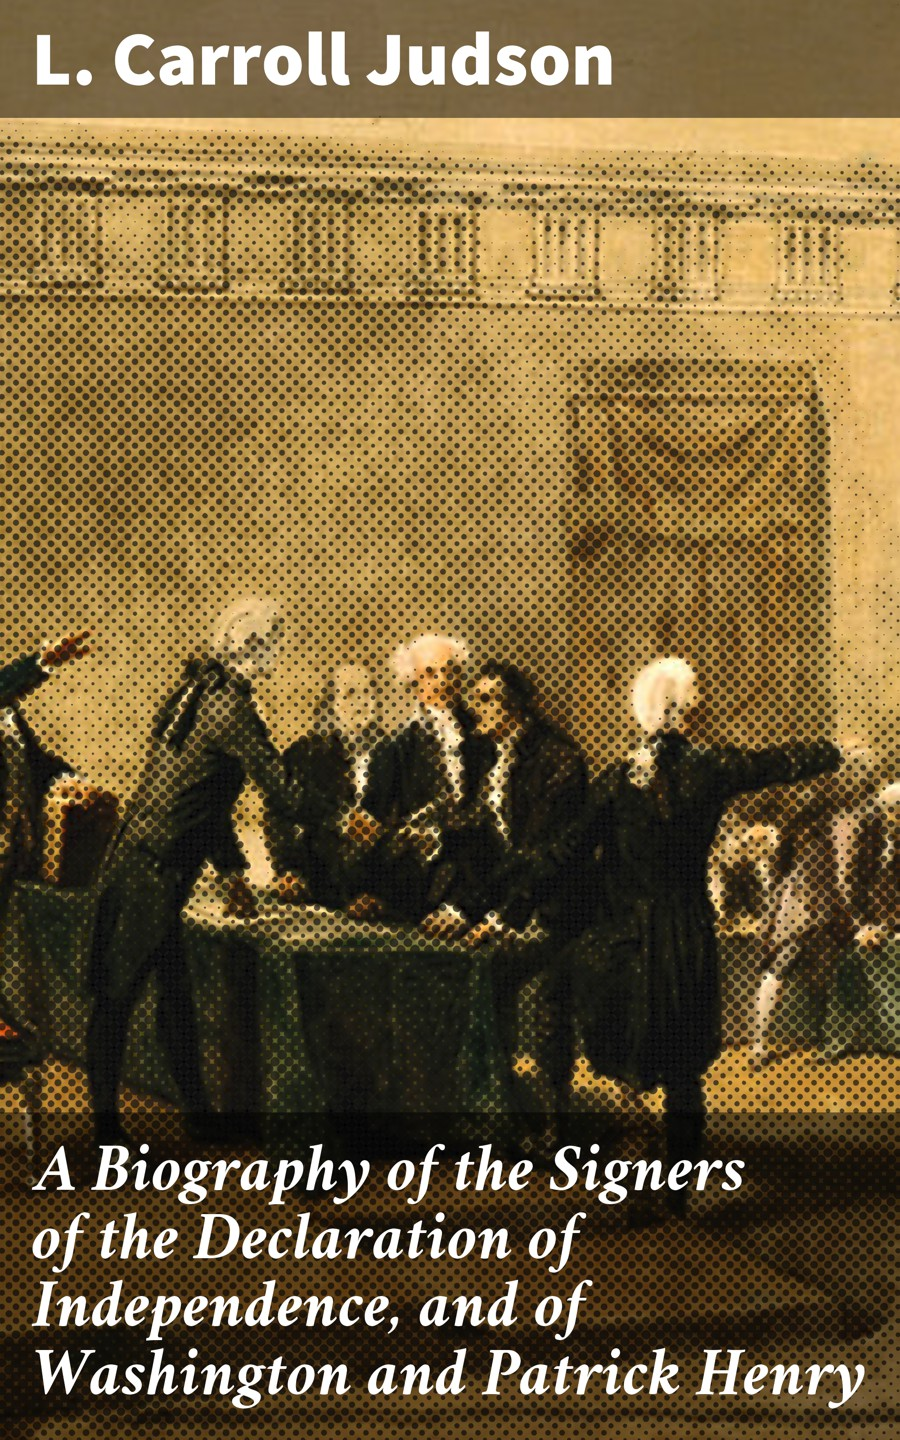 Фото - L. Carroll Judson A Biography of the Signers of the Declaration of Independence, and of Washington and Patrick Henry томас джефферсон the declaration of independence of the united states of america